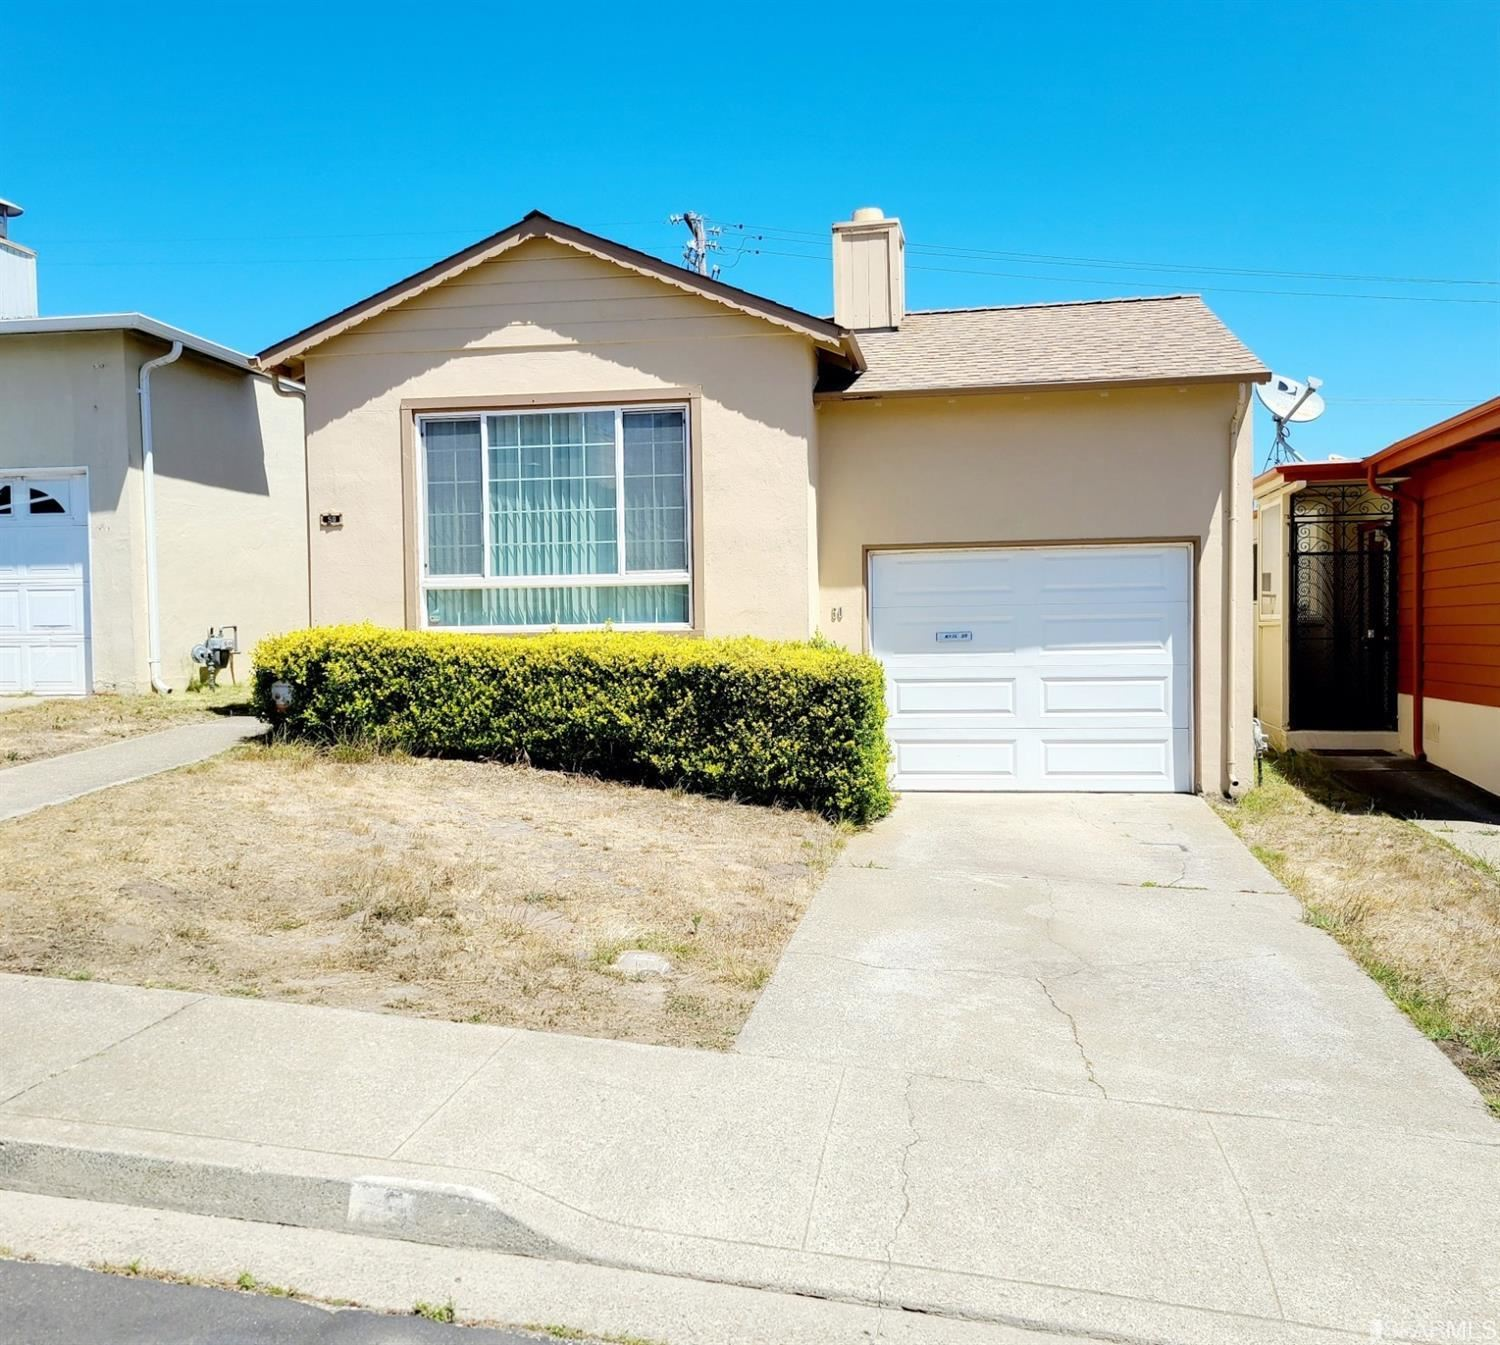 50 Grandview Avenue, Daly City, CA 94015 - #: 504907